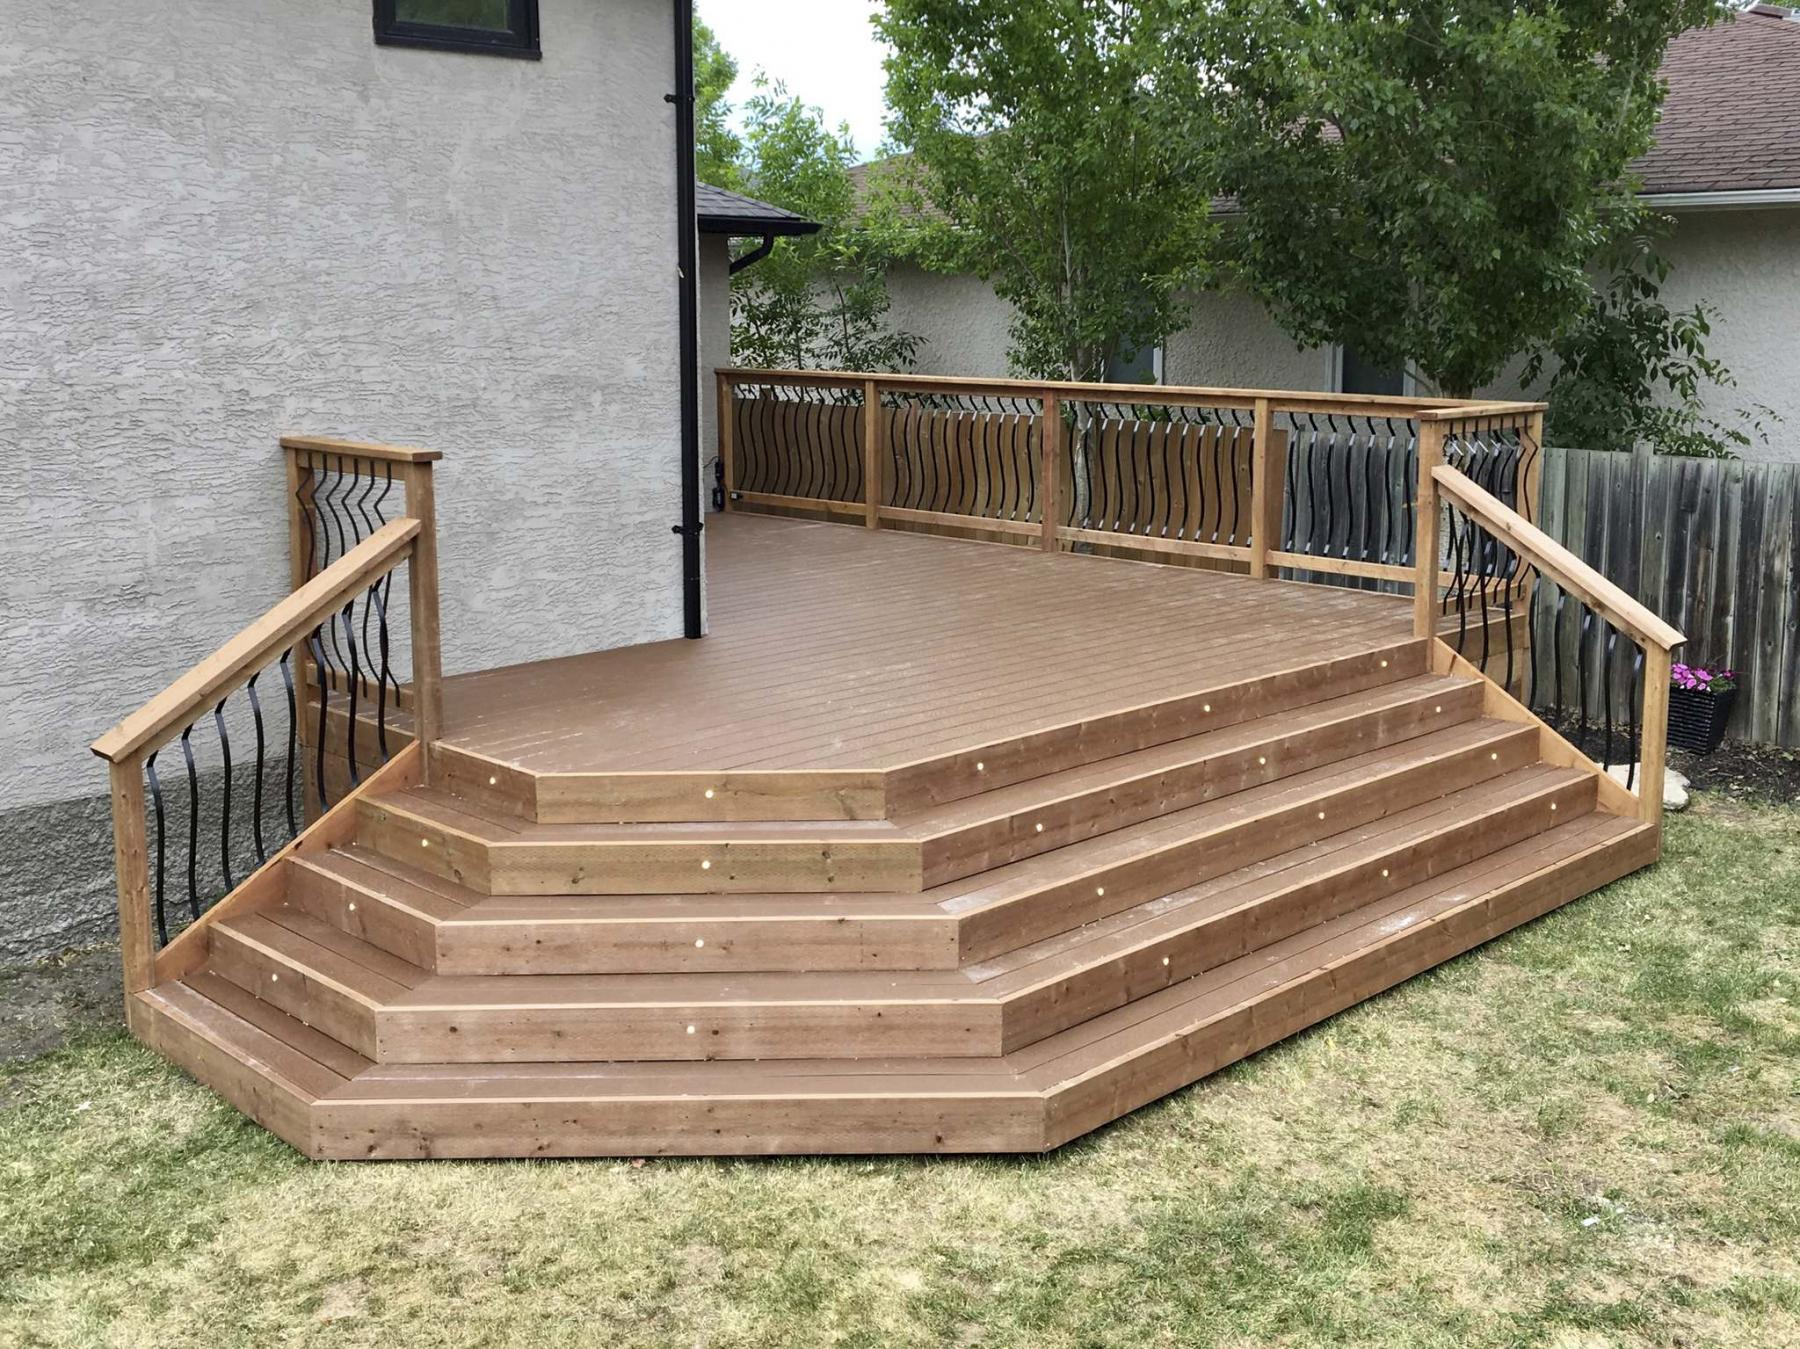 <p>Photos by Marc LaBossiere / Winnipeg Free Press</p><p>A 24-foot-by-16-foot L-shaped deck topped with TREX composite and brown-treated lumber fascia, partial wraparound stairs with flush-mount LED lighting and traditional wooden railings showcasing black metal profile balusters. </p></p>